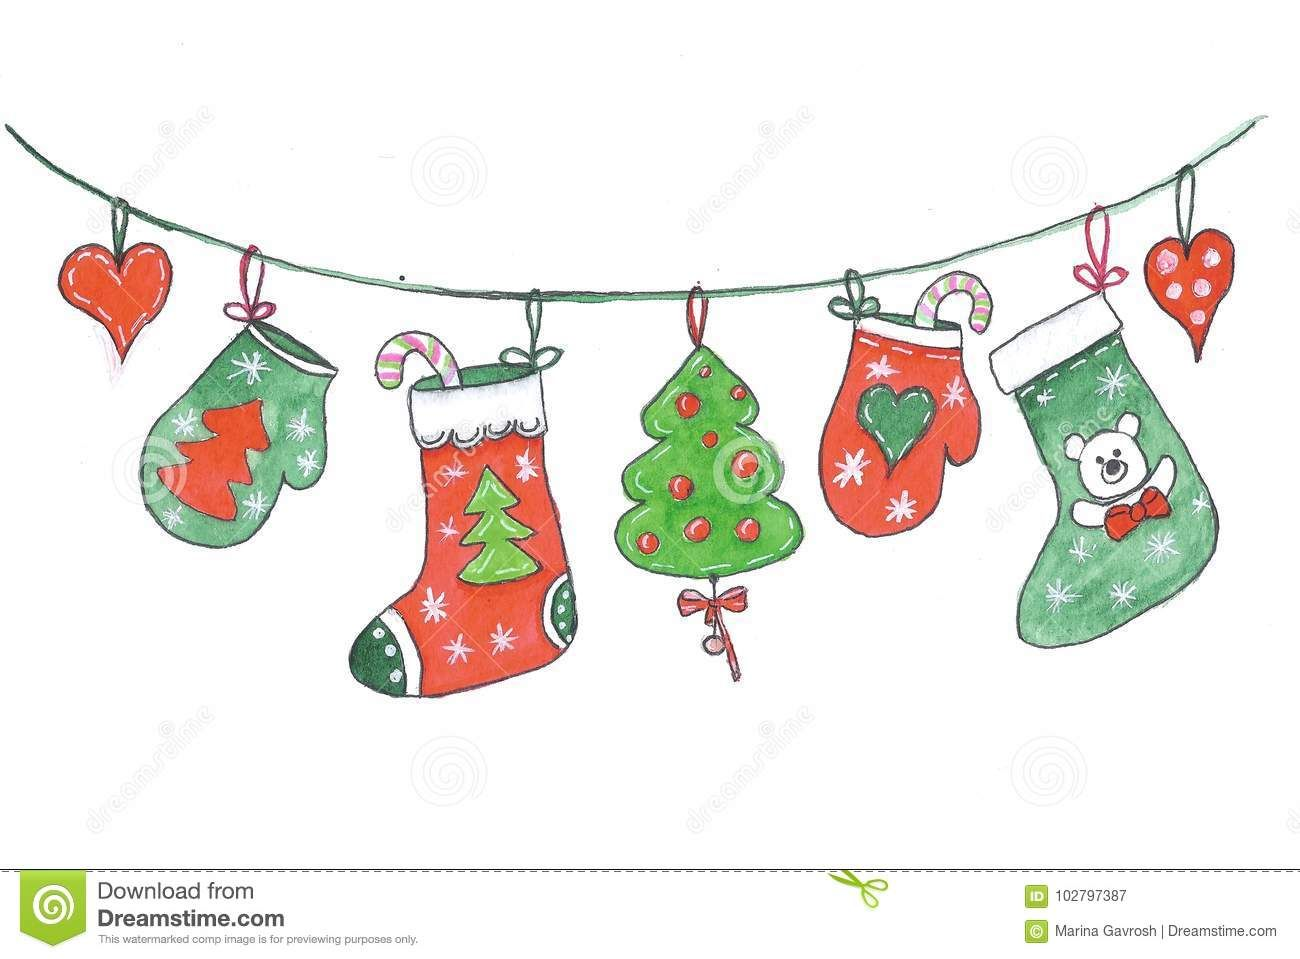 Merry Christmas Decorations Hanging On A Rope Drawing In Watercolor Stock Illustratio Merry Christmas Decoration Christmas Tree Painting Christmas Decorations